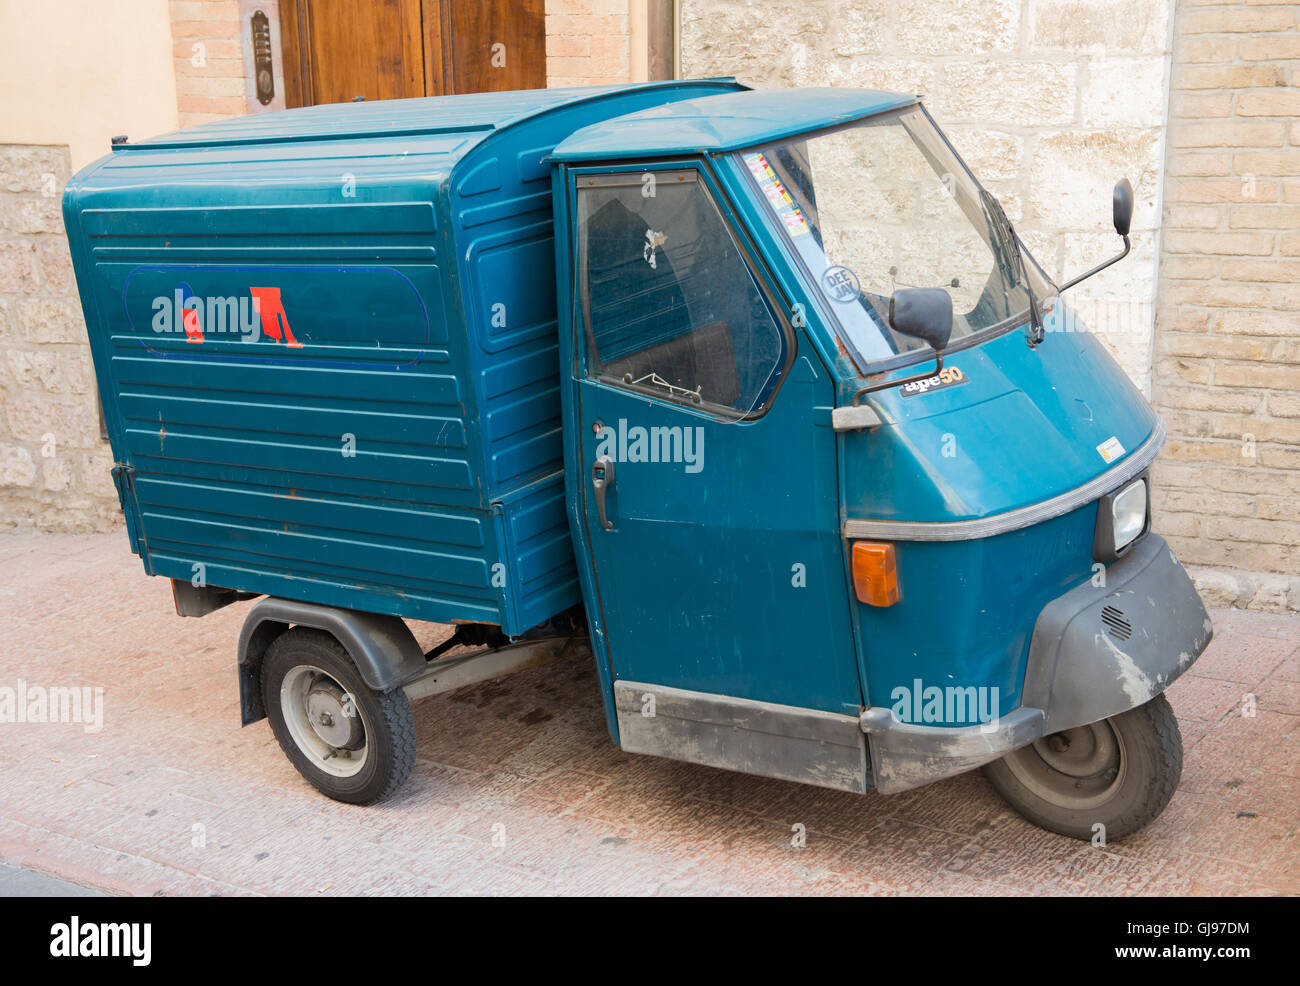 piaggio ape 50 three wheel van stock photo 114529456 alamy. Black Bedroom Furniture Sets. Home Design Ideas